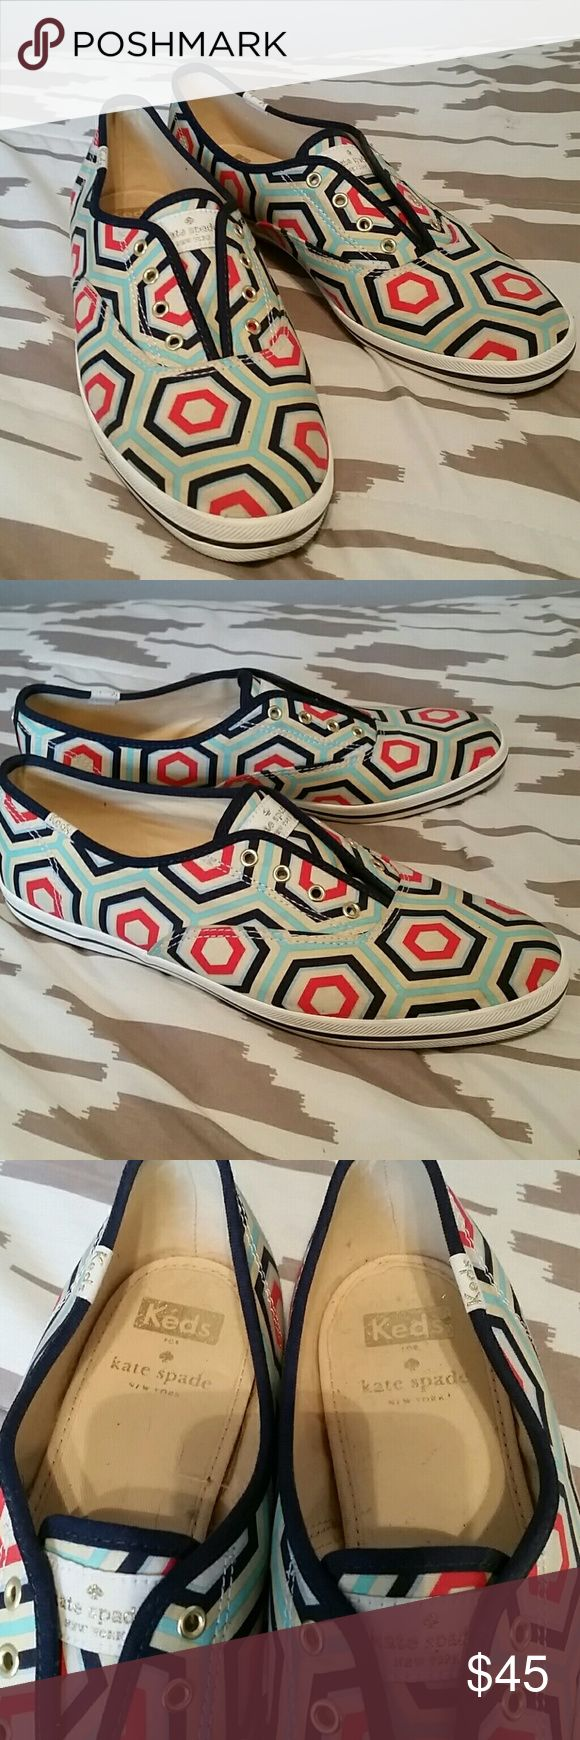 Kate Spade by Keds Very fun Kate Spade sneakers by Keds in great condition. Minimal wear, some slight stains, nothing too visible. Multiple colors, no laces required. Very clean inside,  no odors. These shoes go with everything! kate spade Shoes Sneakers